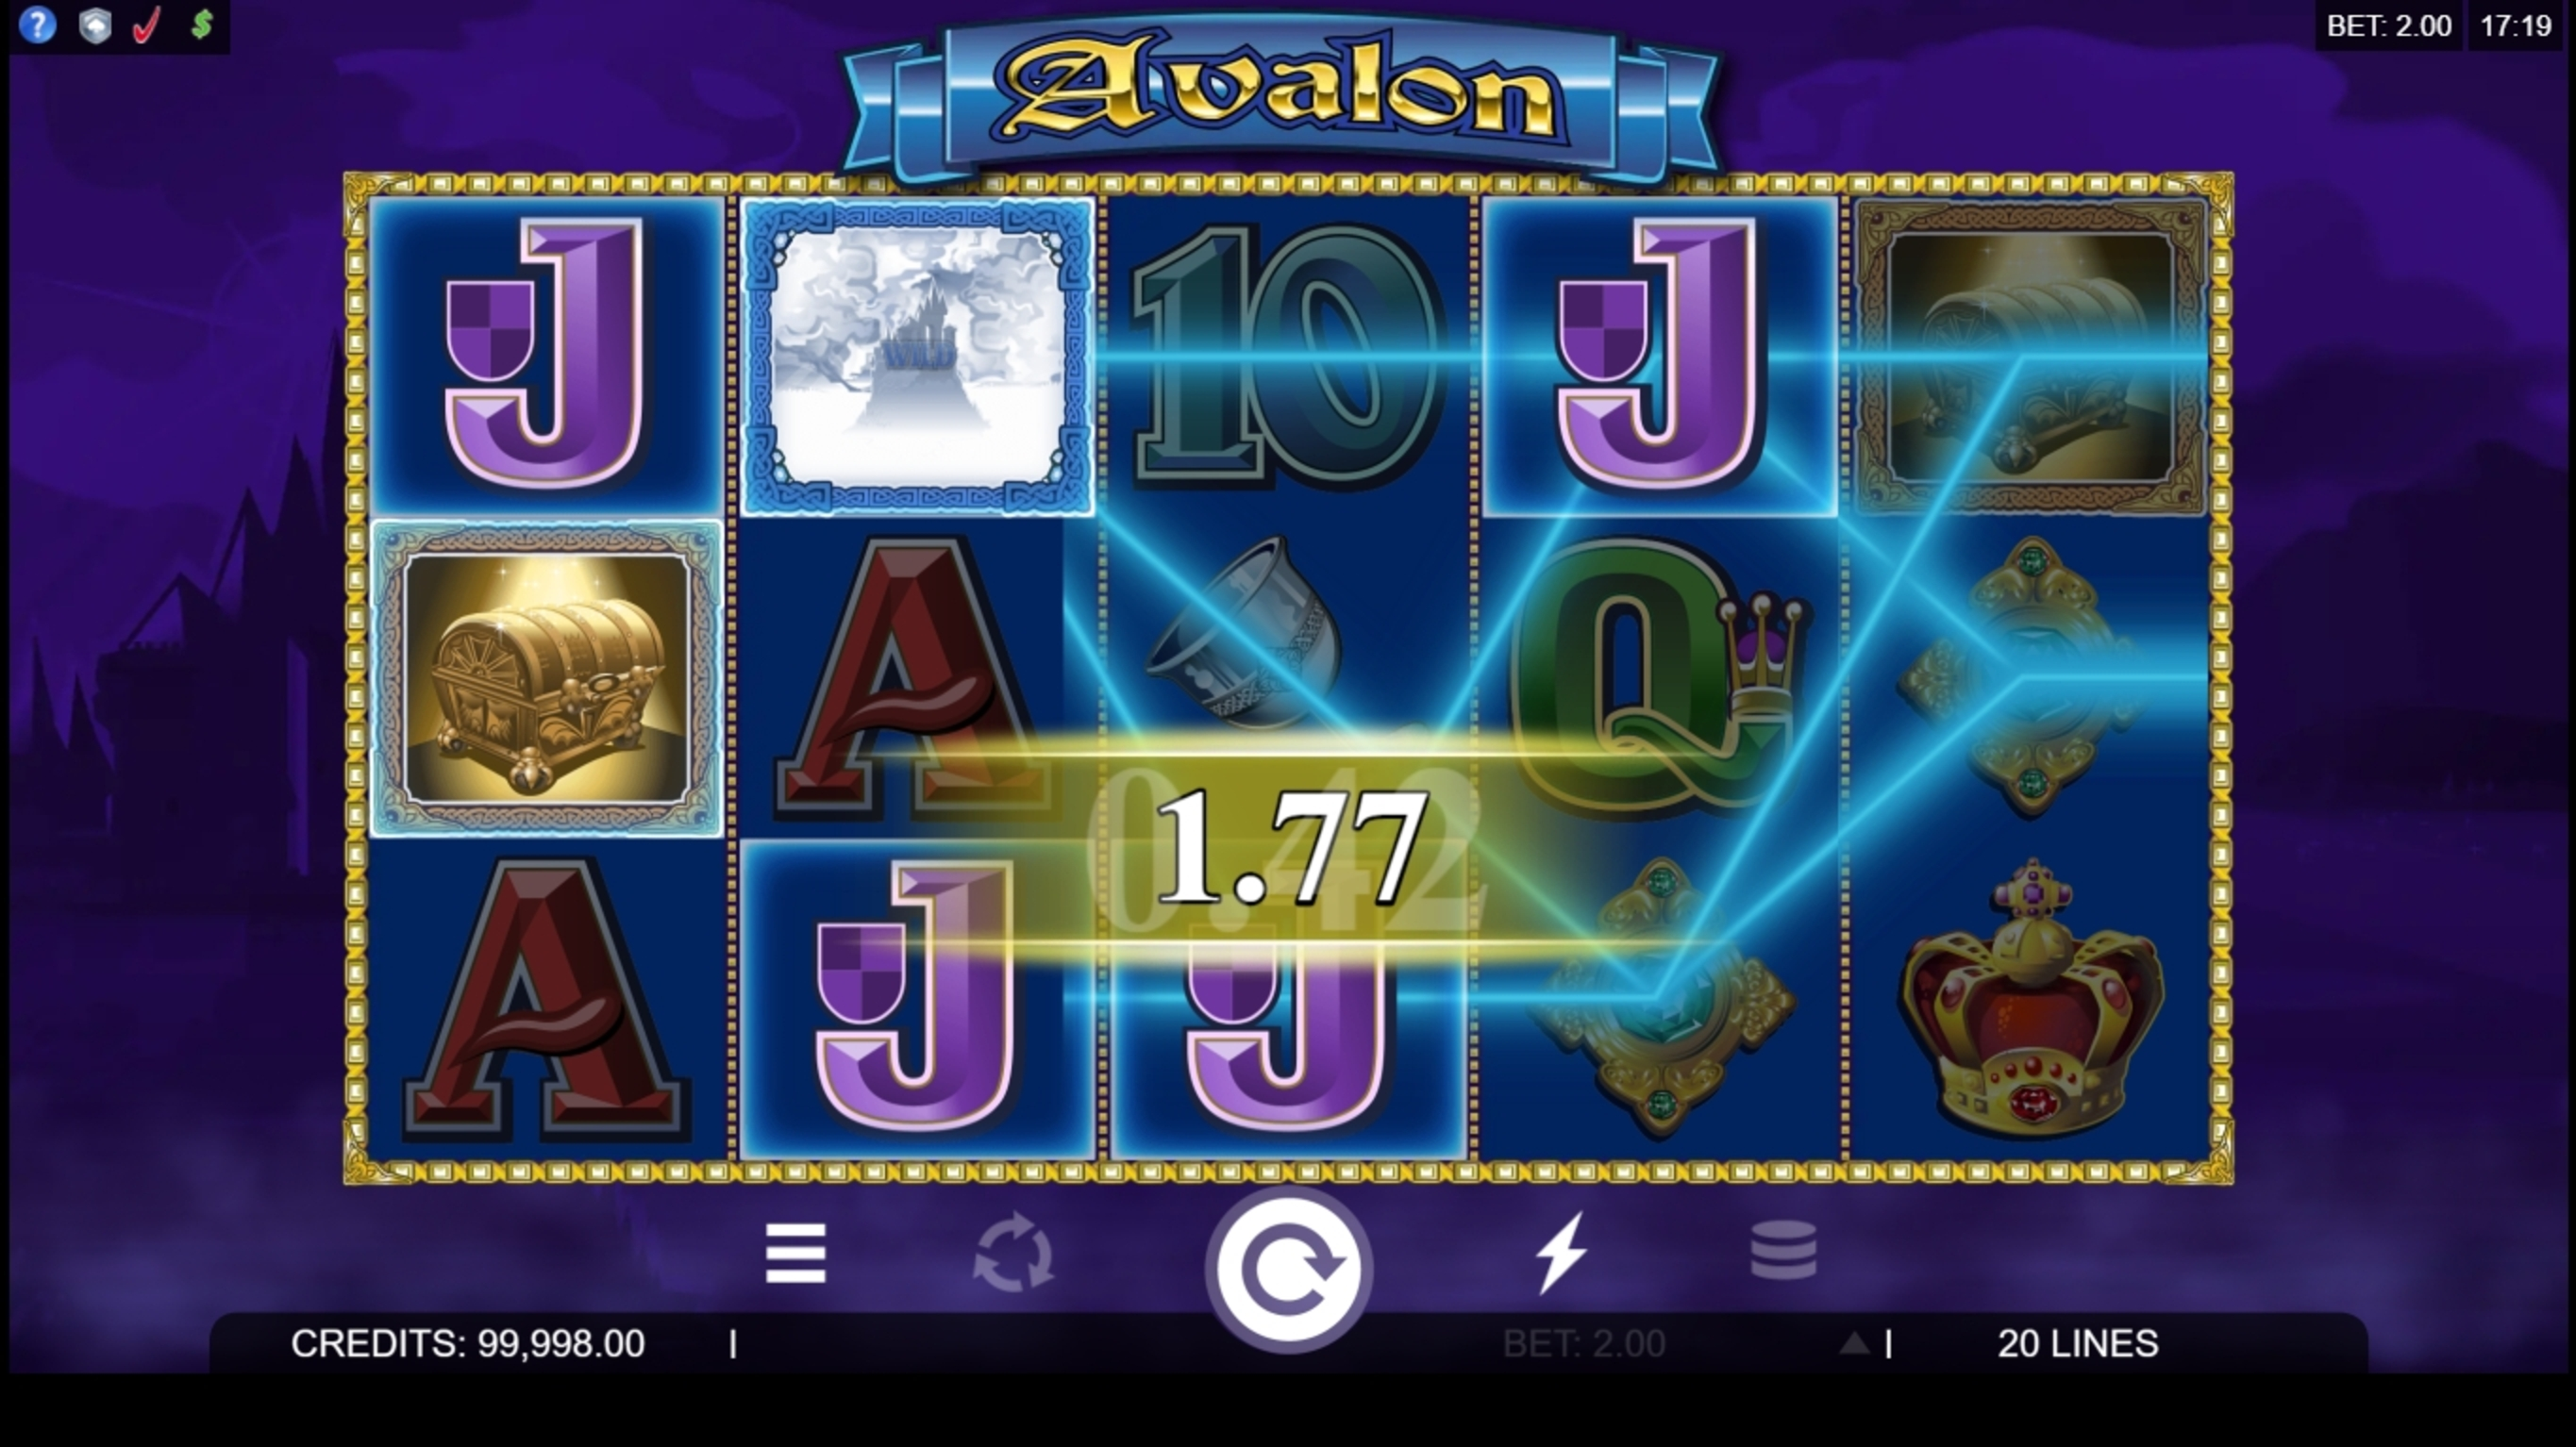 Win Money in Avalon Free Slot Game by Microgaming